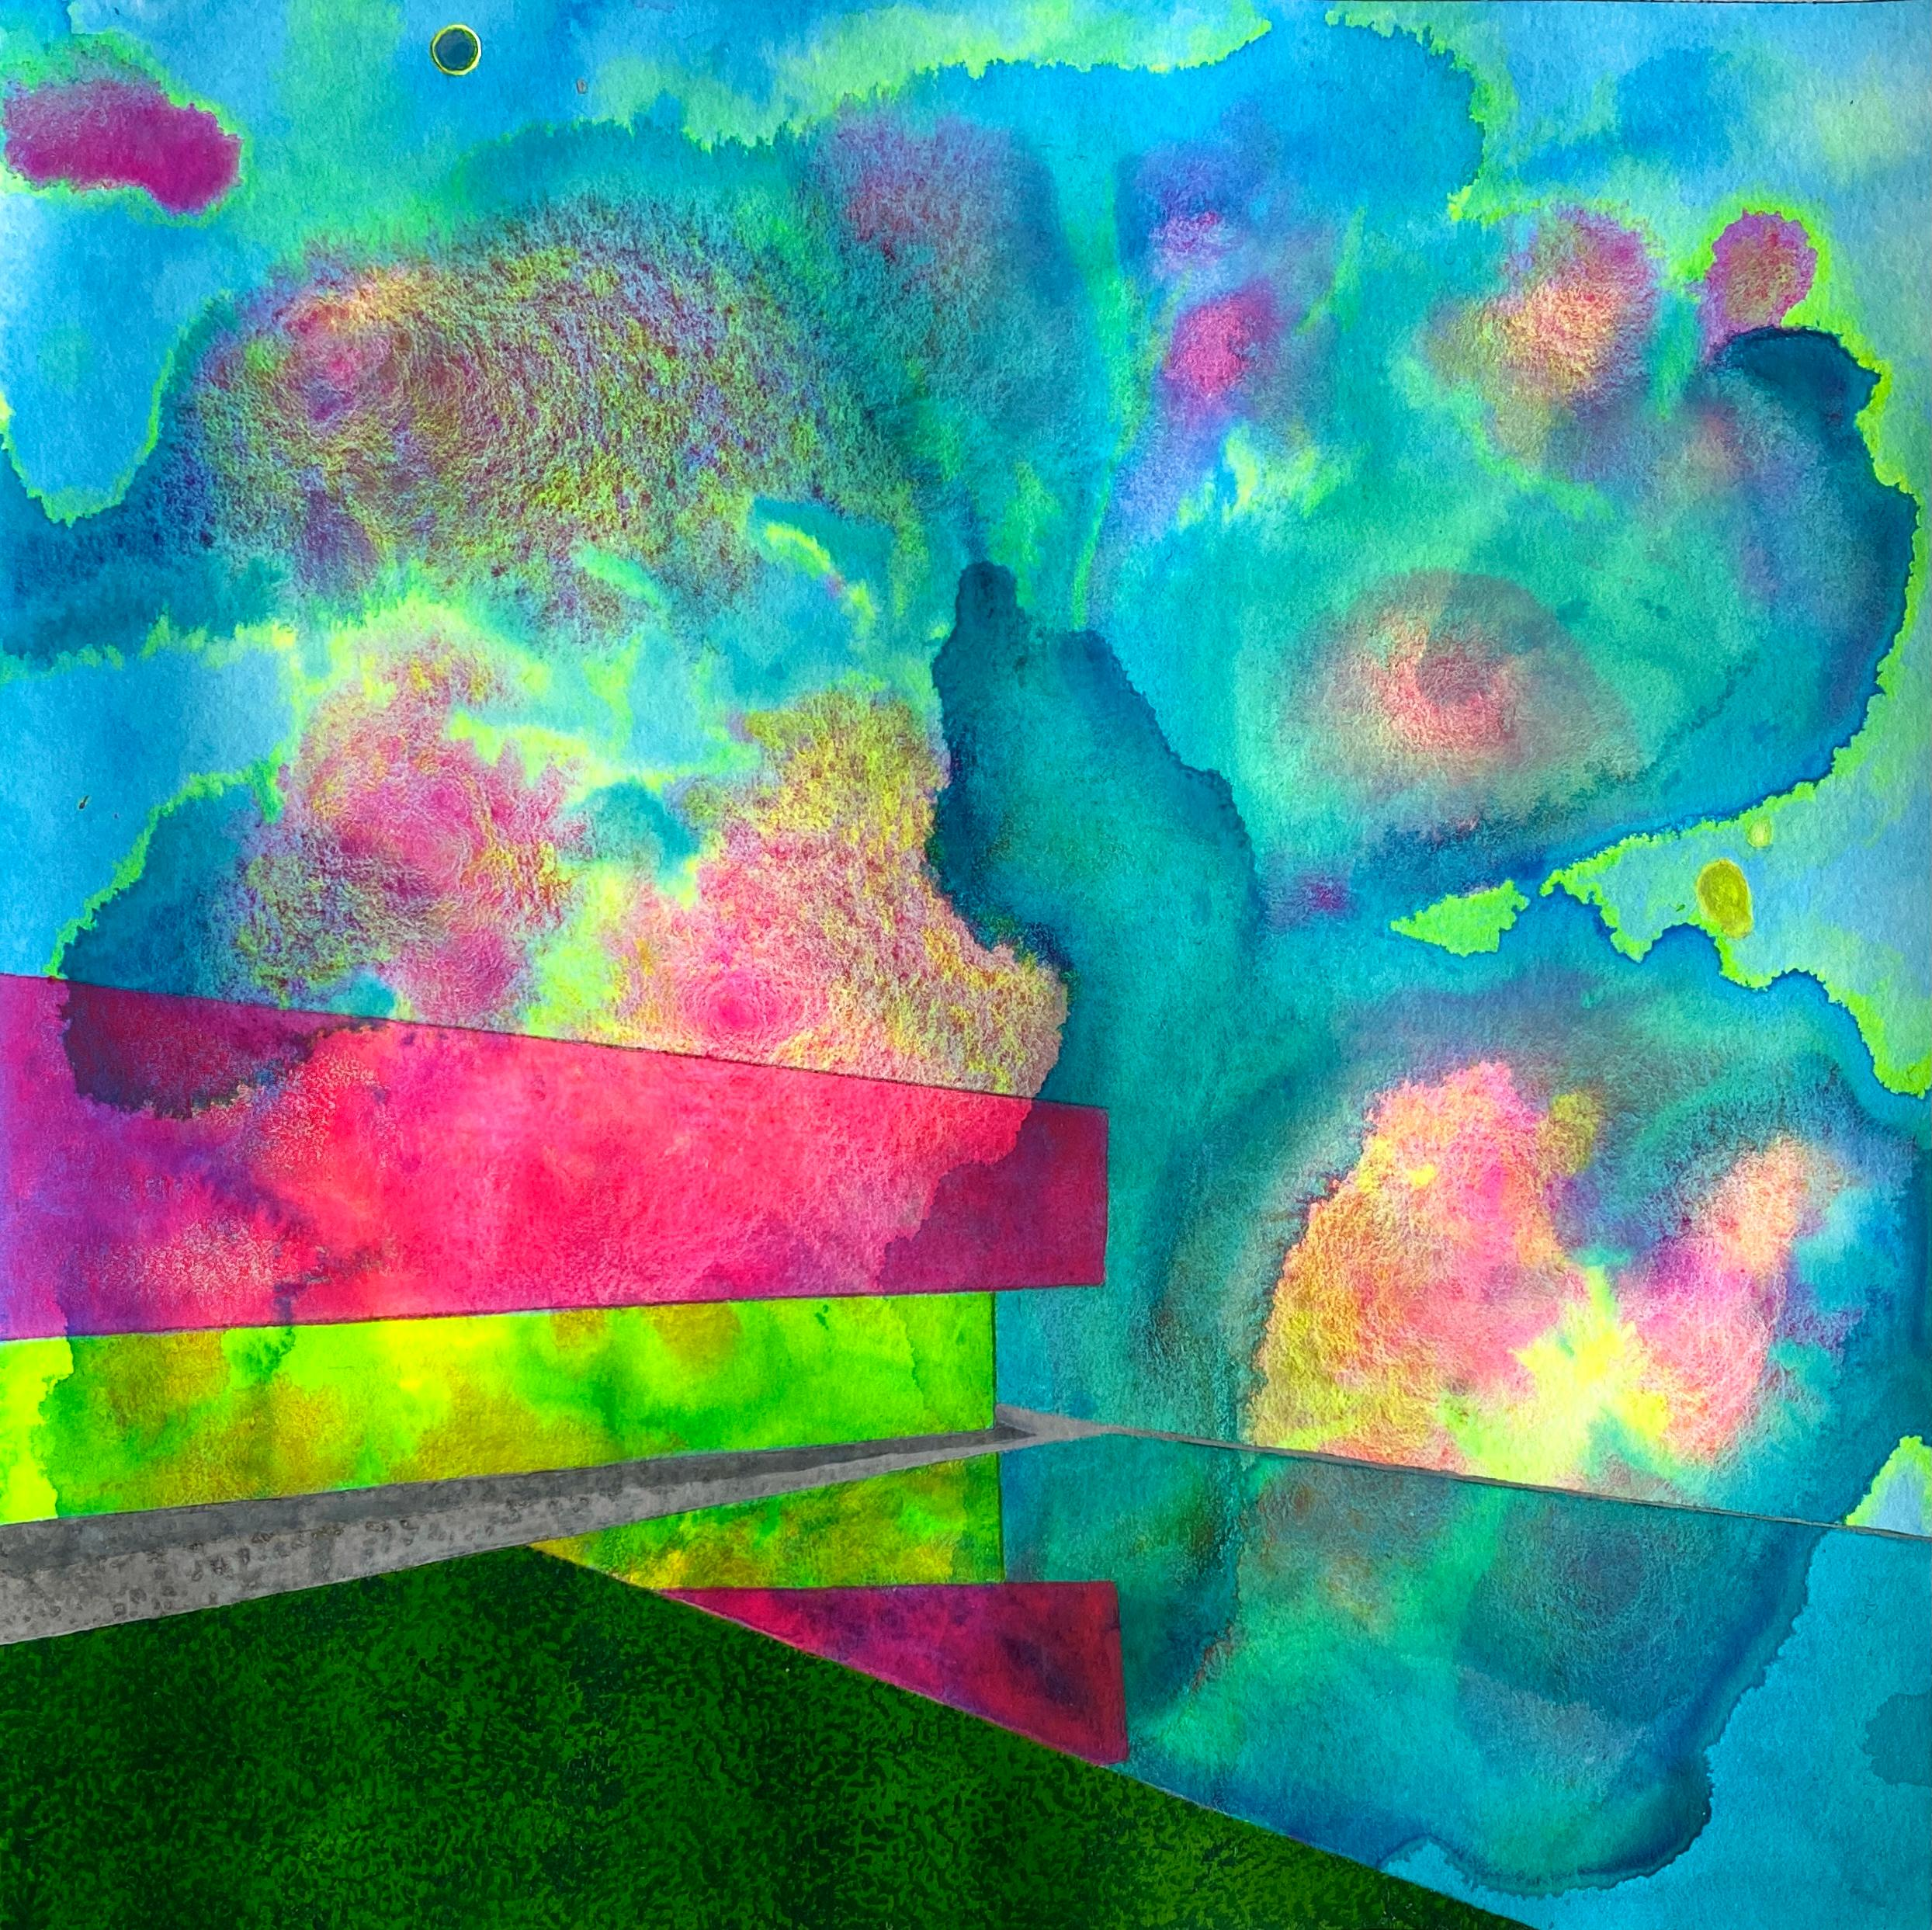 Eclipse, bright surrealistic painting of architecture against sky, neon colors